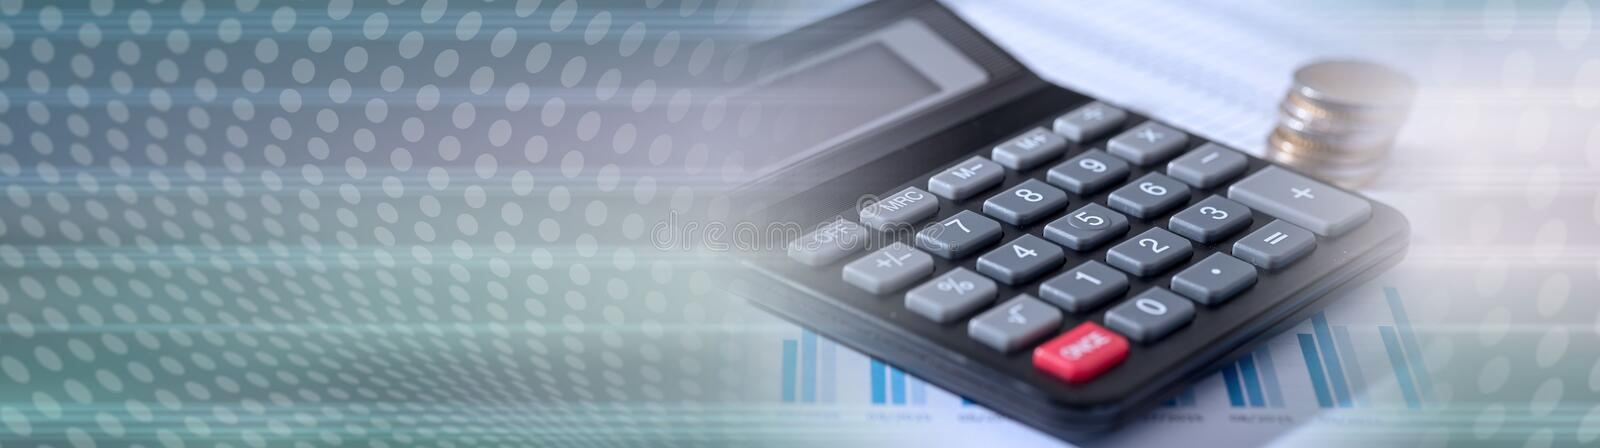 Calculator on financial documents, accounting concept. panoramic banner stock photo